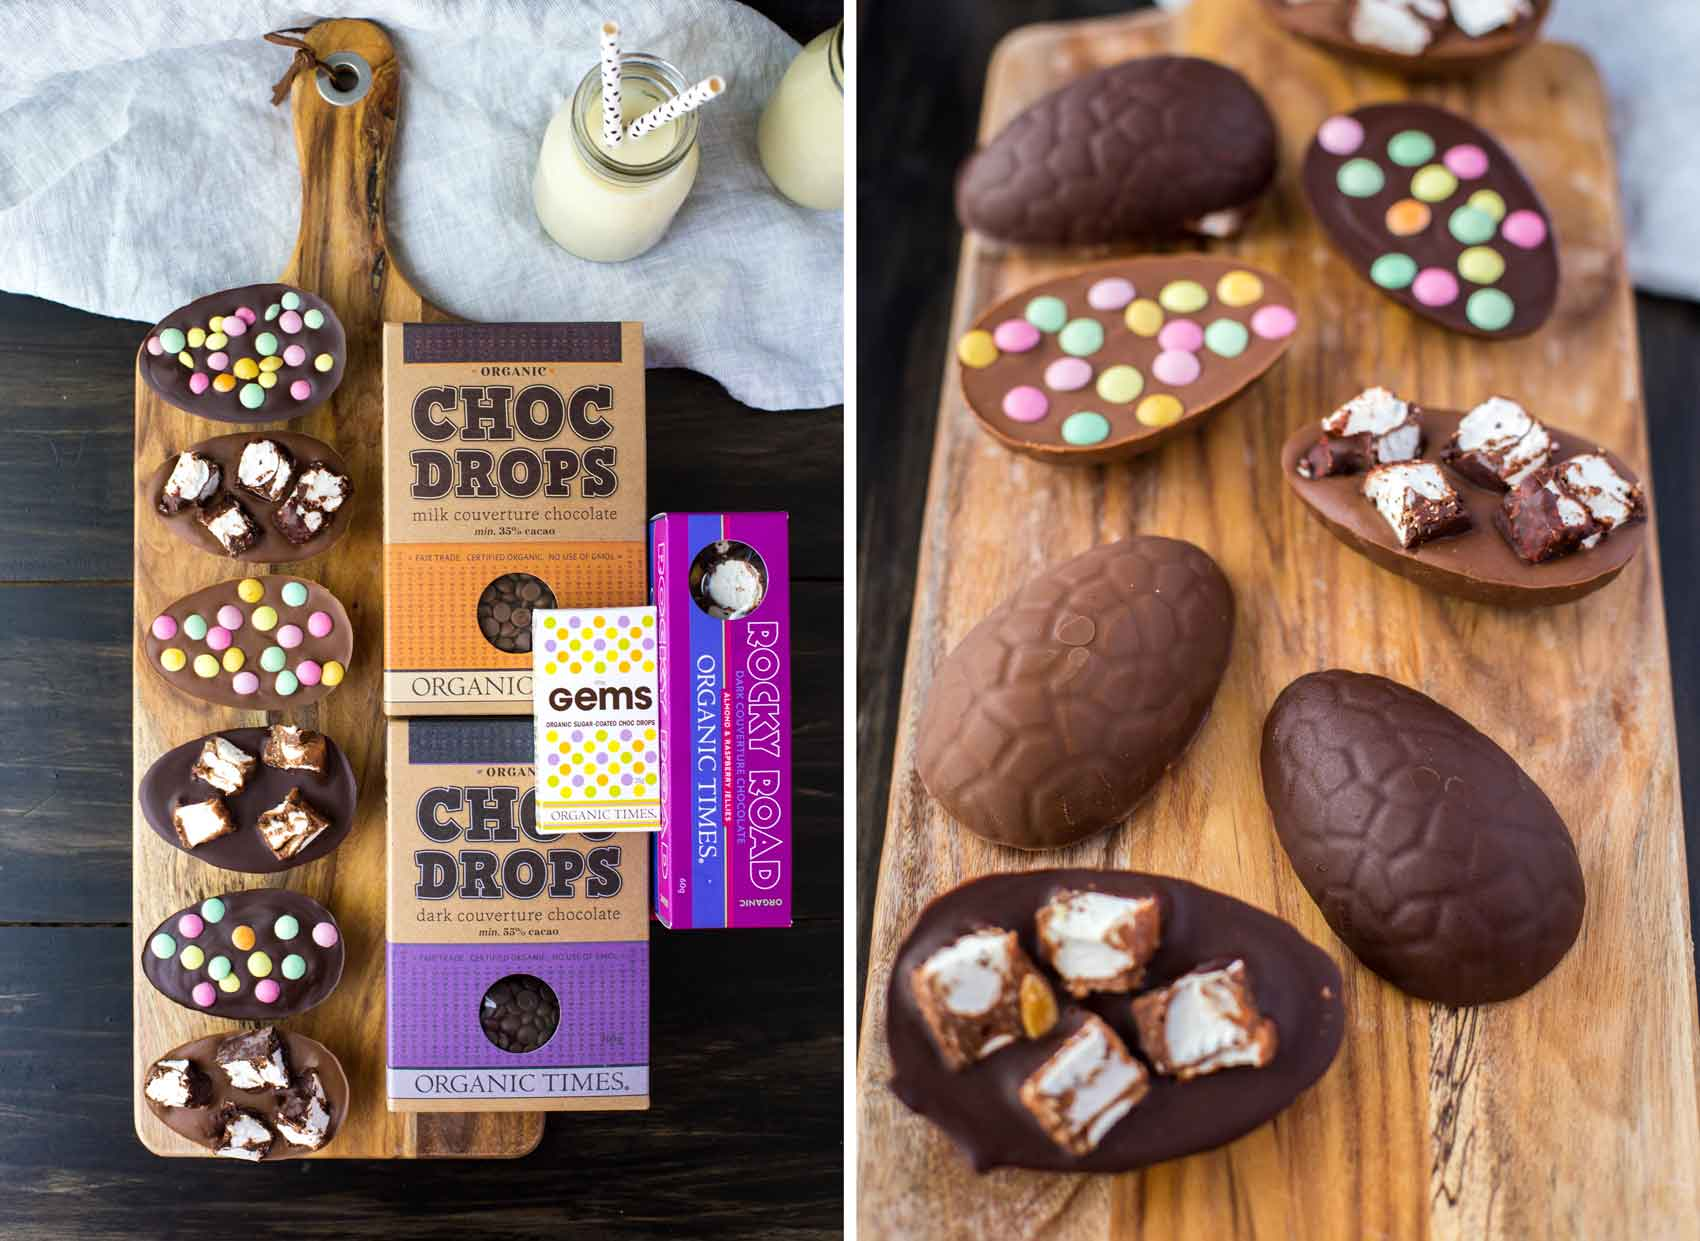 Organic Times Chocolate Products next to Rocky Road Easter Eggs on a board